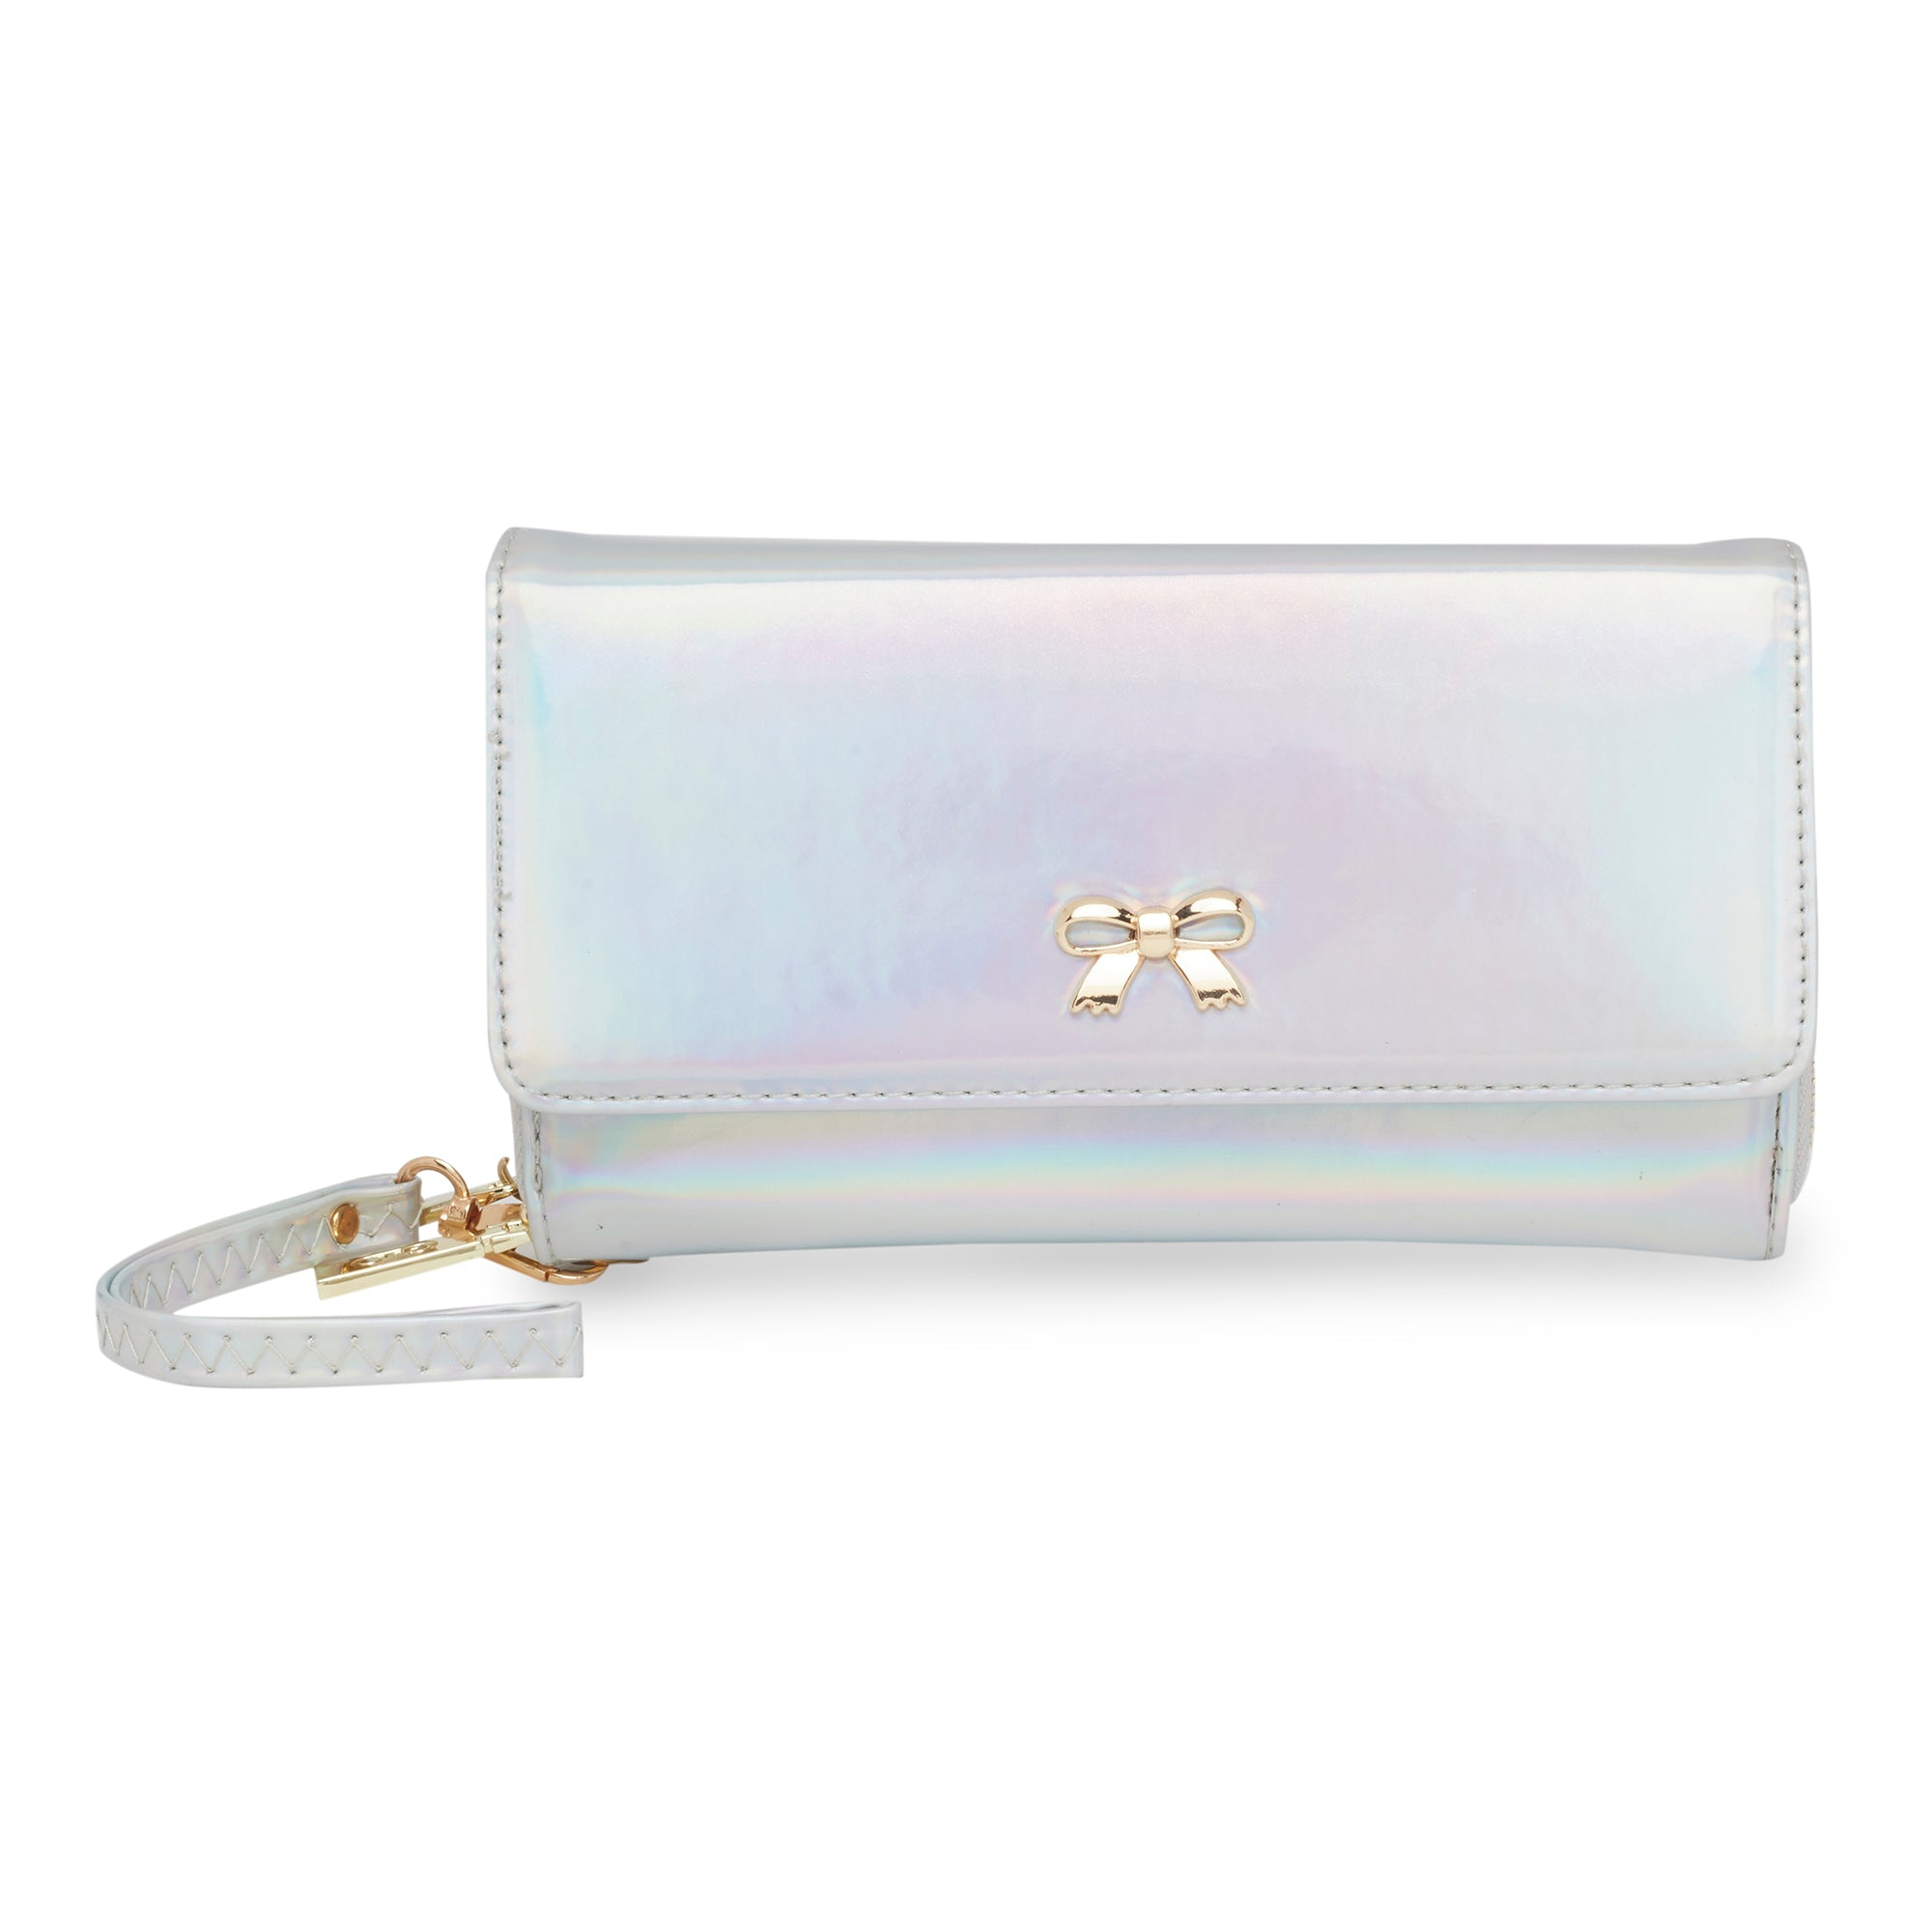 Globus Multi Color Wallet-1